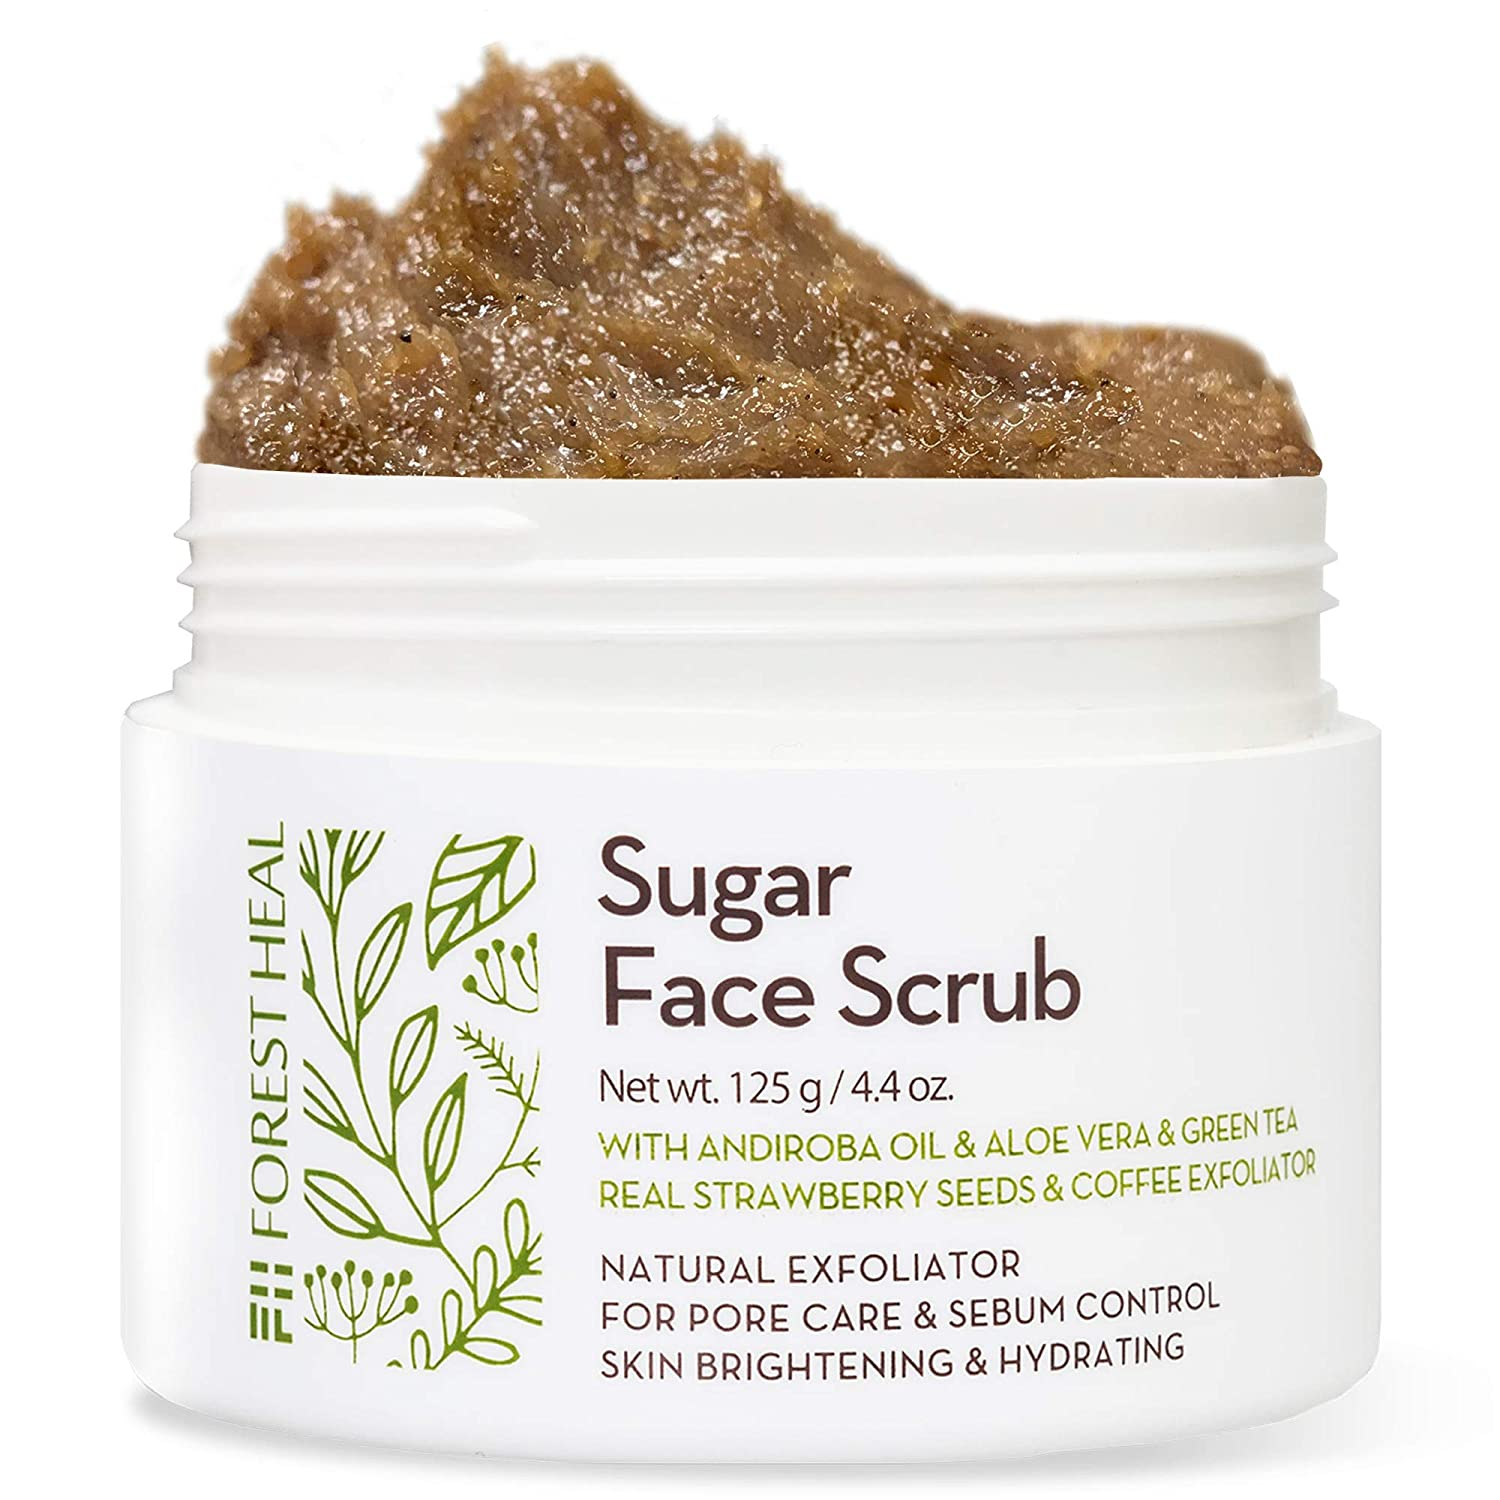 Face Sugar Scrub - Facial and Body Exfoliator for Cellulite - Skin Brightening & Hydrating - Pore Care, Acne, Sebum Control - Facial Scrub with Andiroba Oil - Forest Heal (100 ml / 3.38 fl.oz)